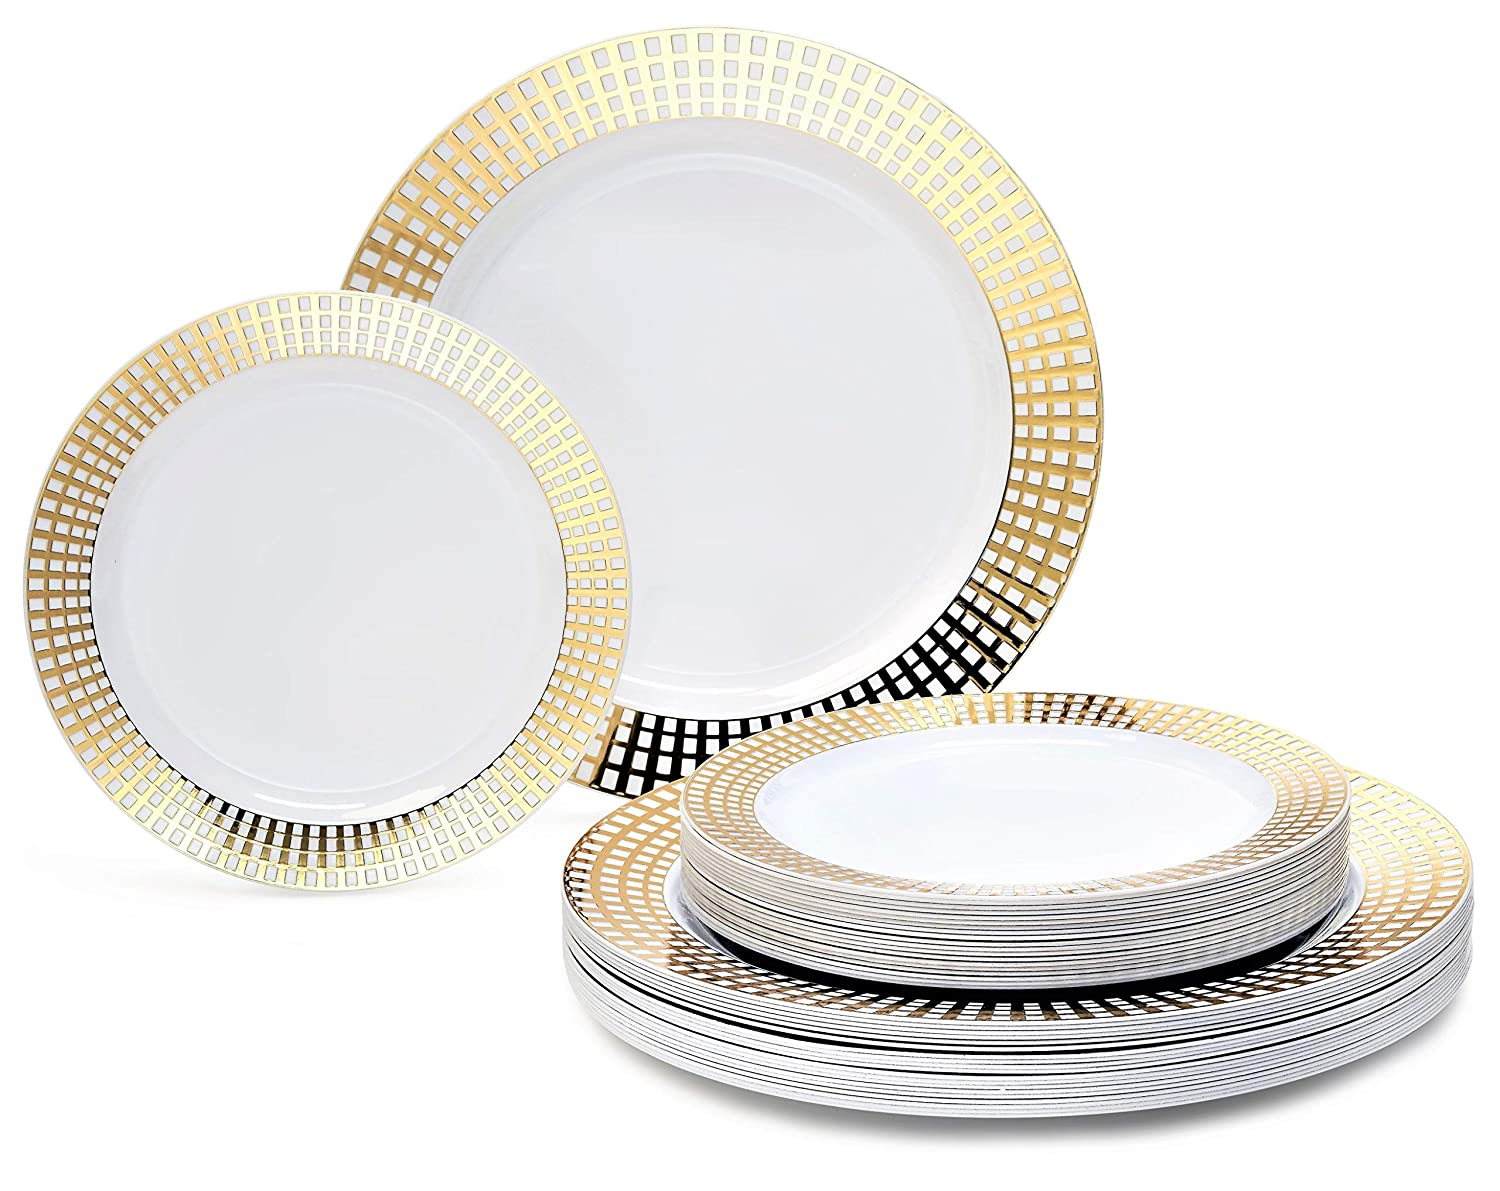 Princess White   gold 50 piece set (25 guests) 360 PIECE   60 guest  OCCASIONS  Wedding Disposable Plastic Plate and Silverware Combo (White Silver rim plates)